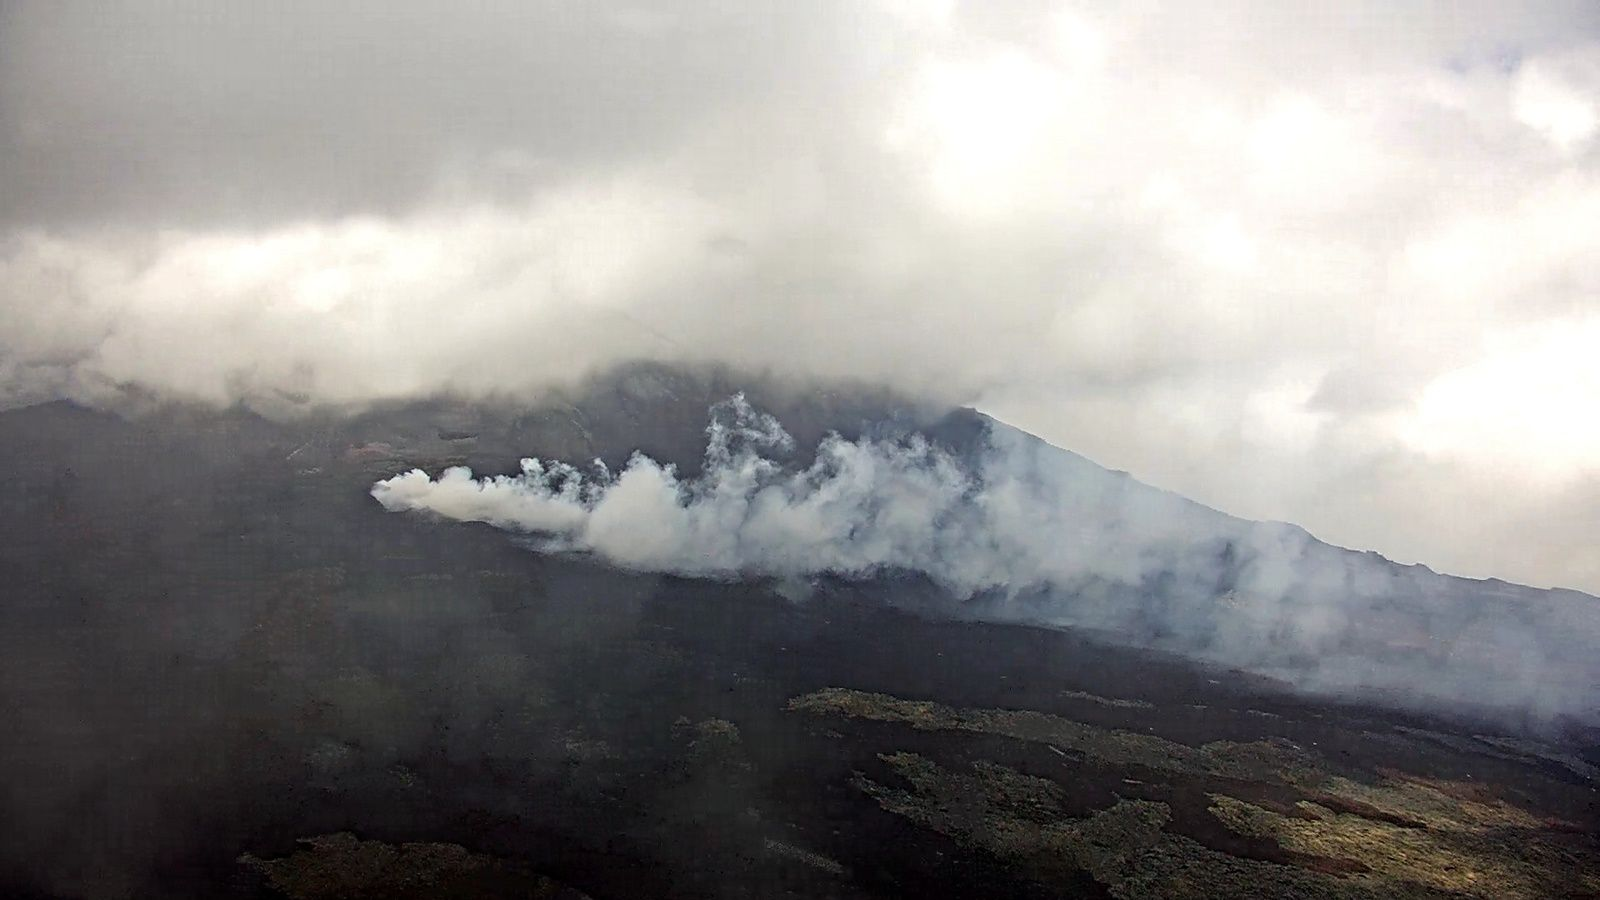 Piton de La Fournaise - 22.10.2018 / 14h02 - strong outgassing due to weather conditions - IRT / OVPF webcam